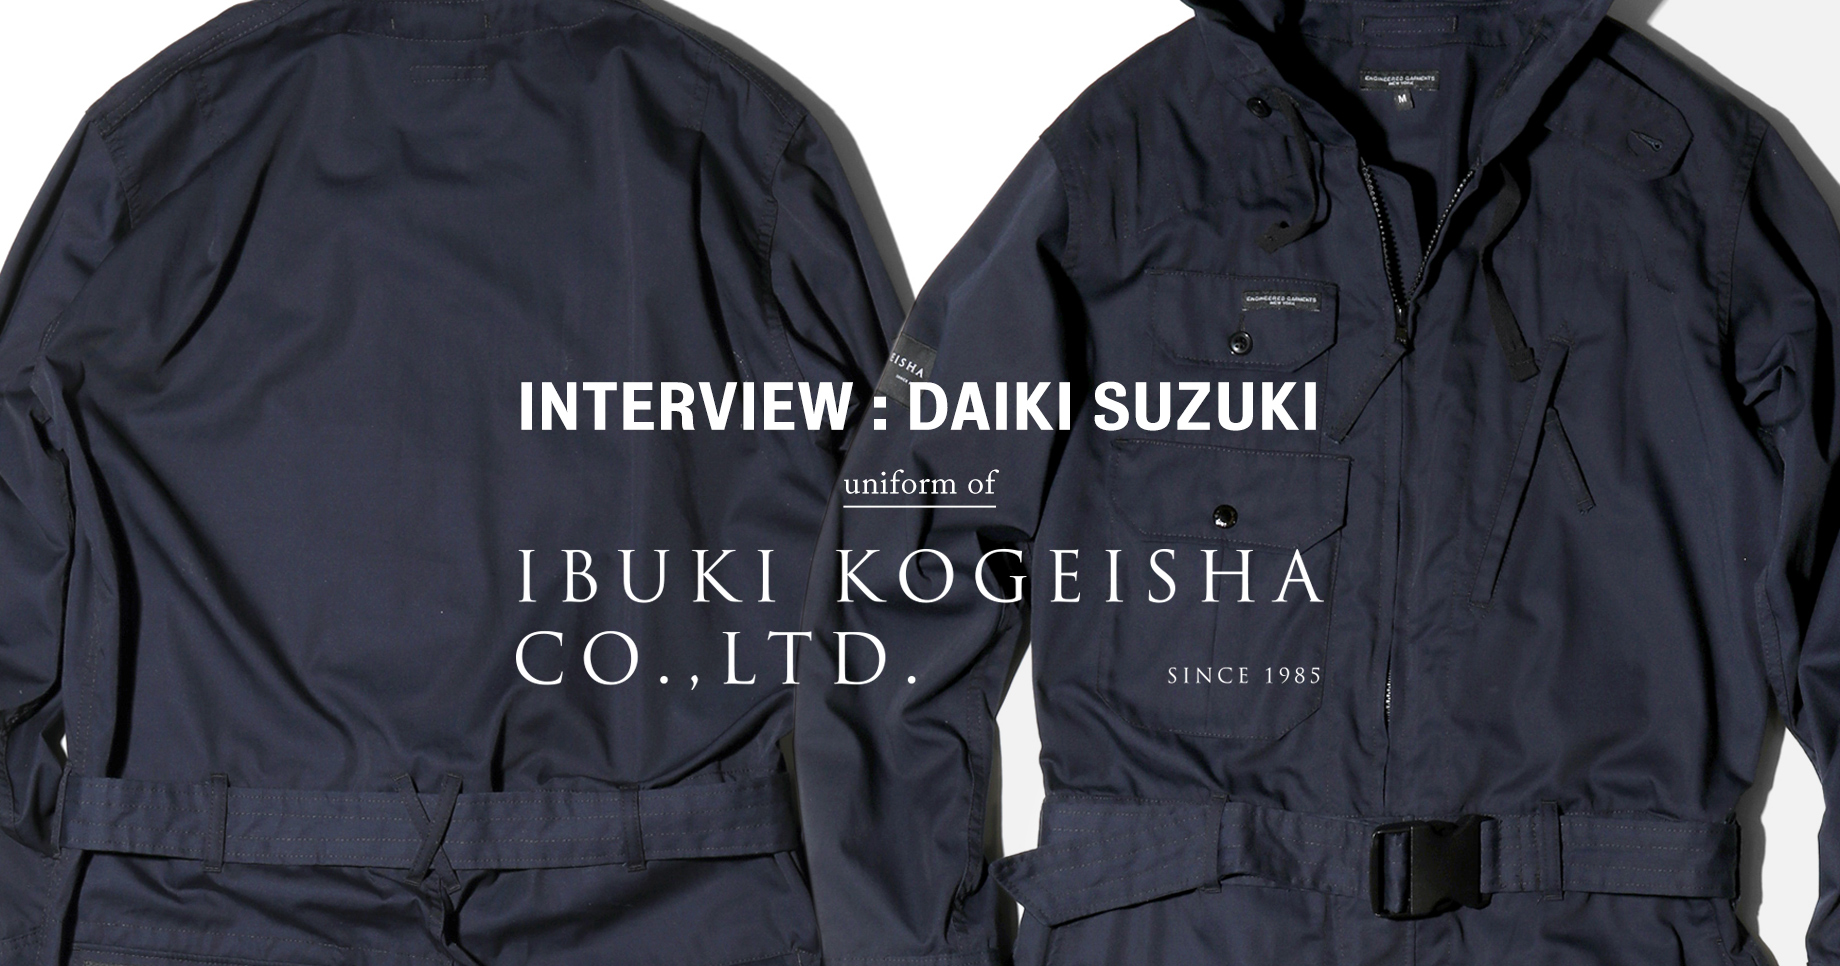 ENGINEERED GARMENTS uniform for IBUKI KOGEISHA CO., LTD.